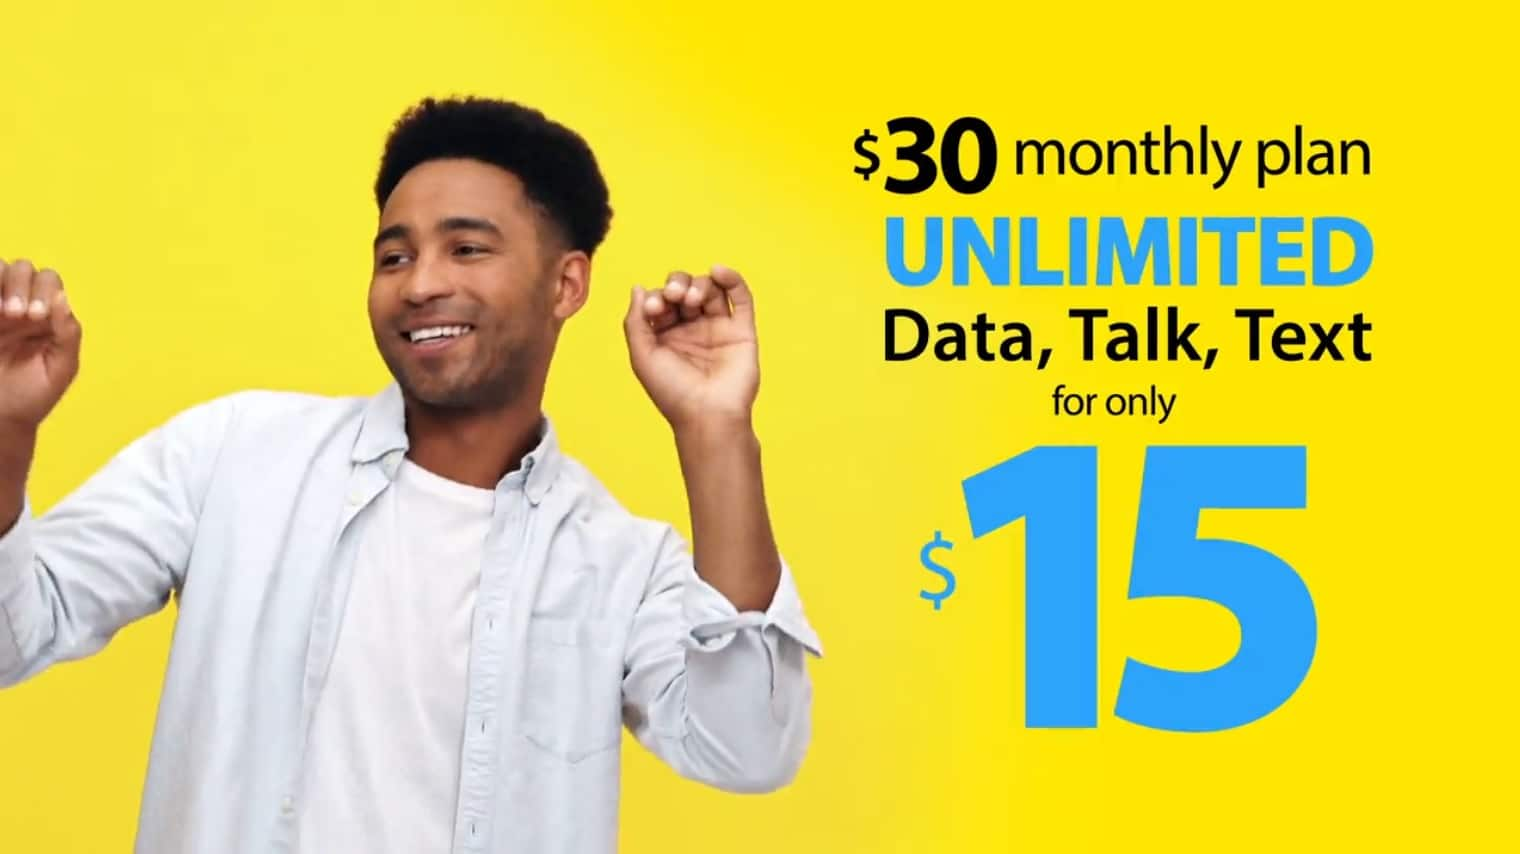 H2O Wireless: 50% Off 1st Month on All Monthly Unlimited Plans: $30 Unlimited Talk, Text, Data w/ 4GB LTE Plan - $15 & More